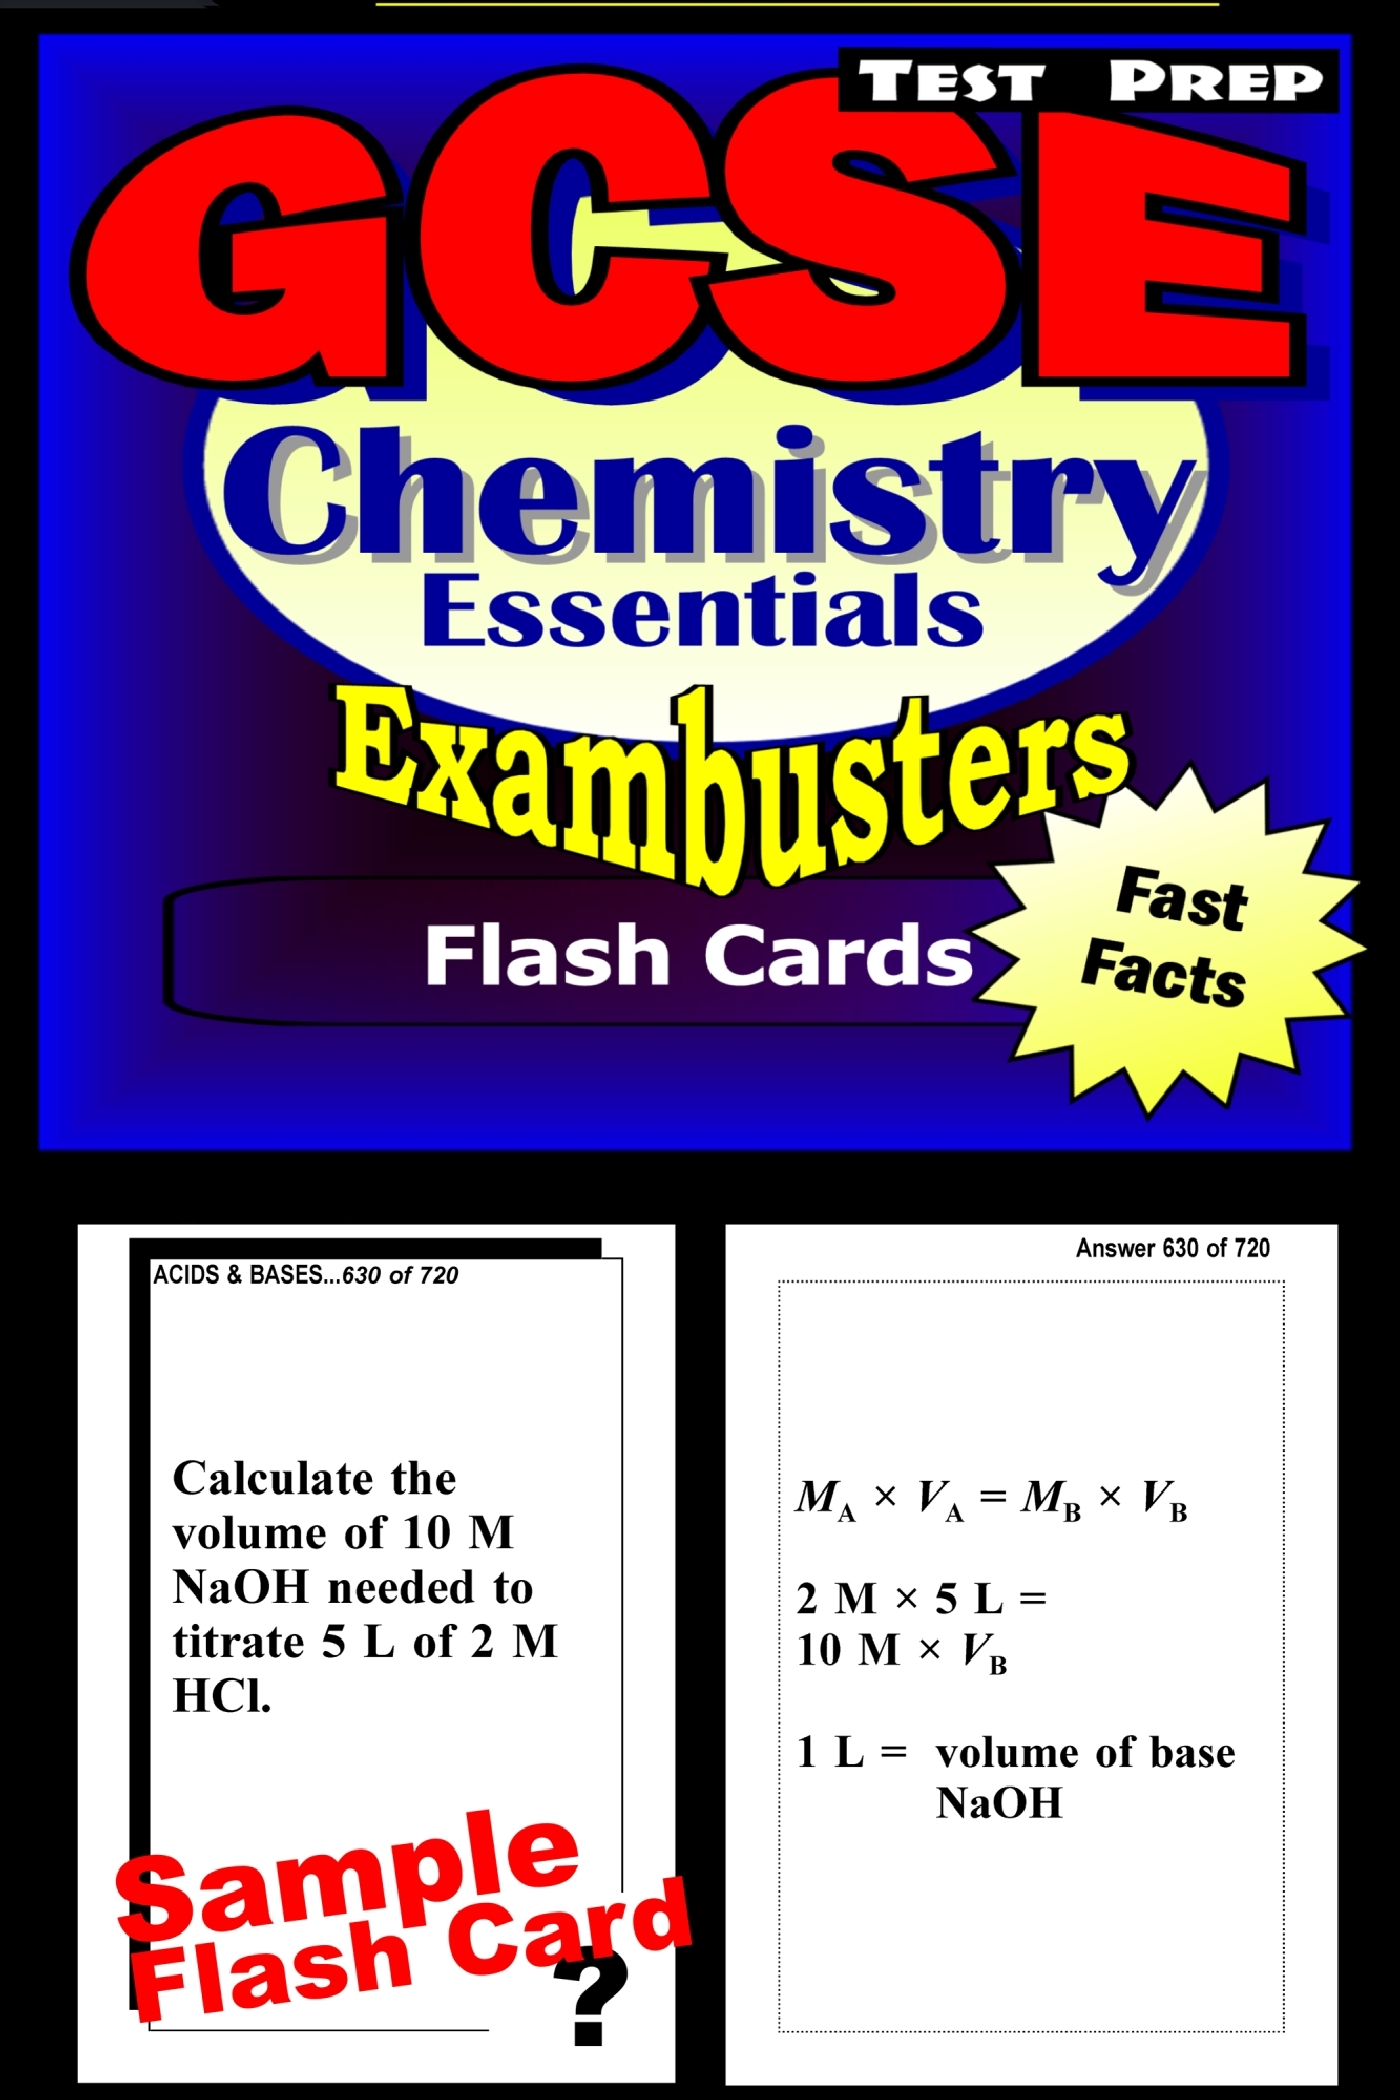 GCSE Chemistry Test Prep Review--Exambusters Flash Cards: GCSE Exam Study Guide